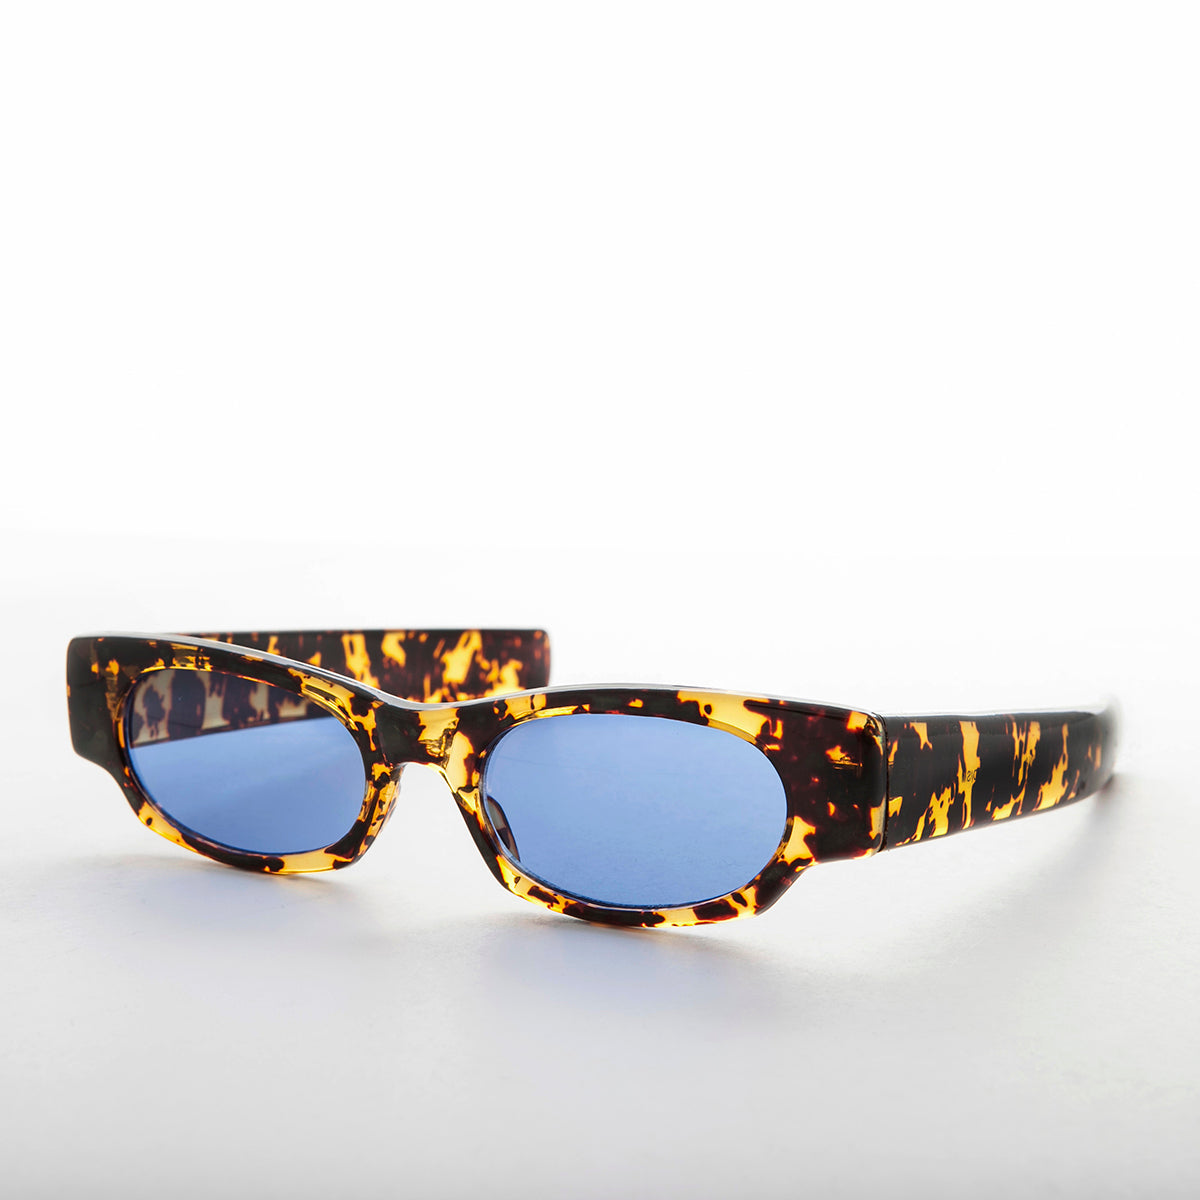 Slim Cruiser Vintage Sunglass with Blue Tinted Lens